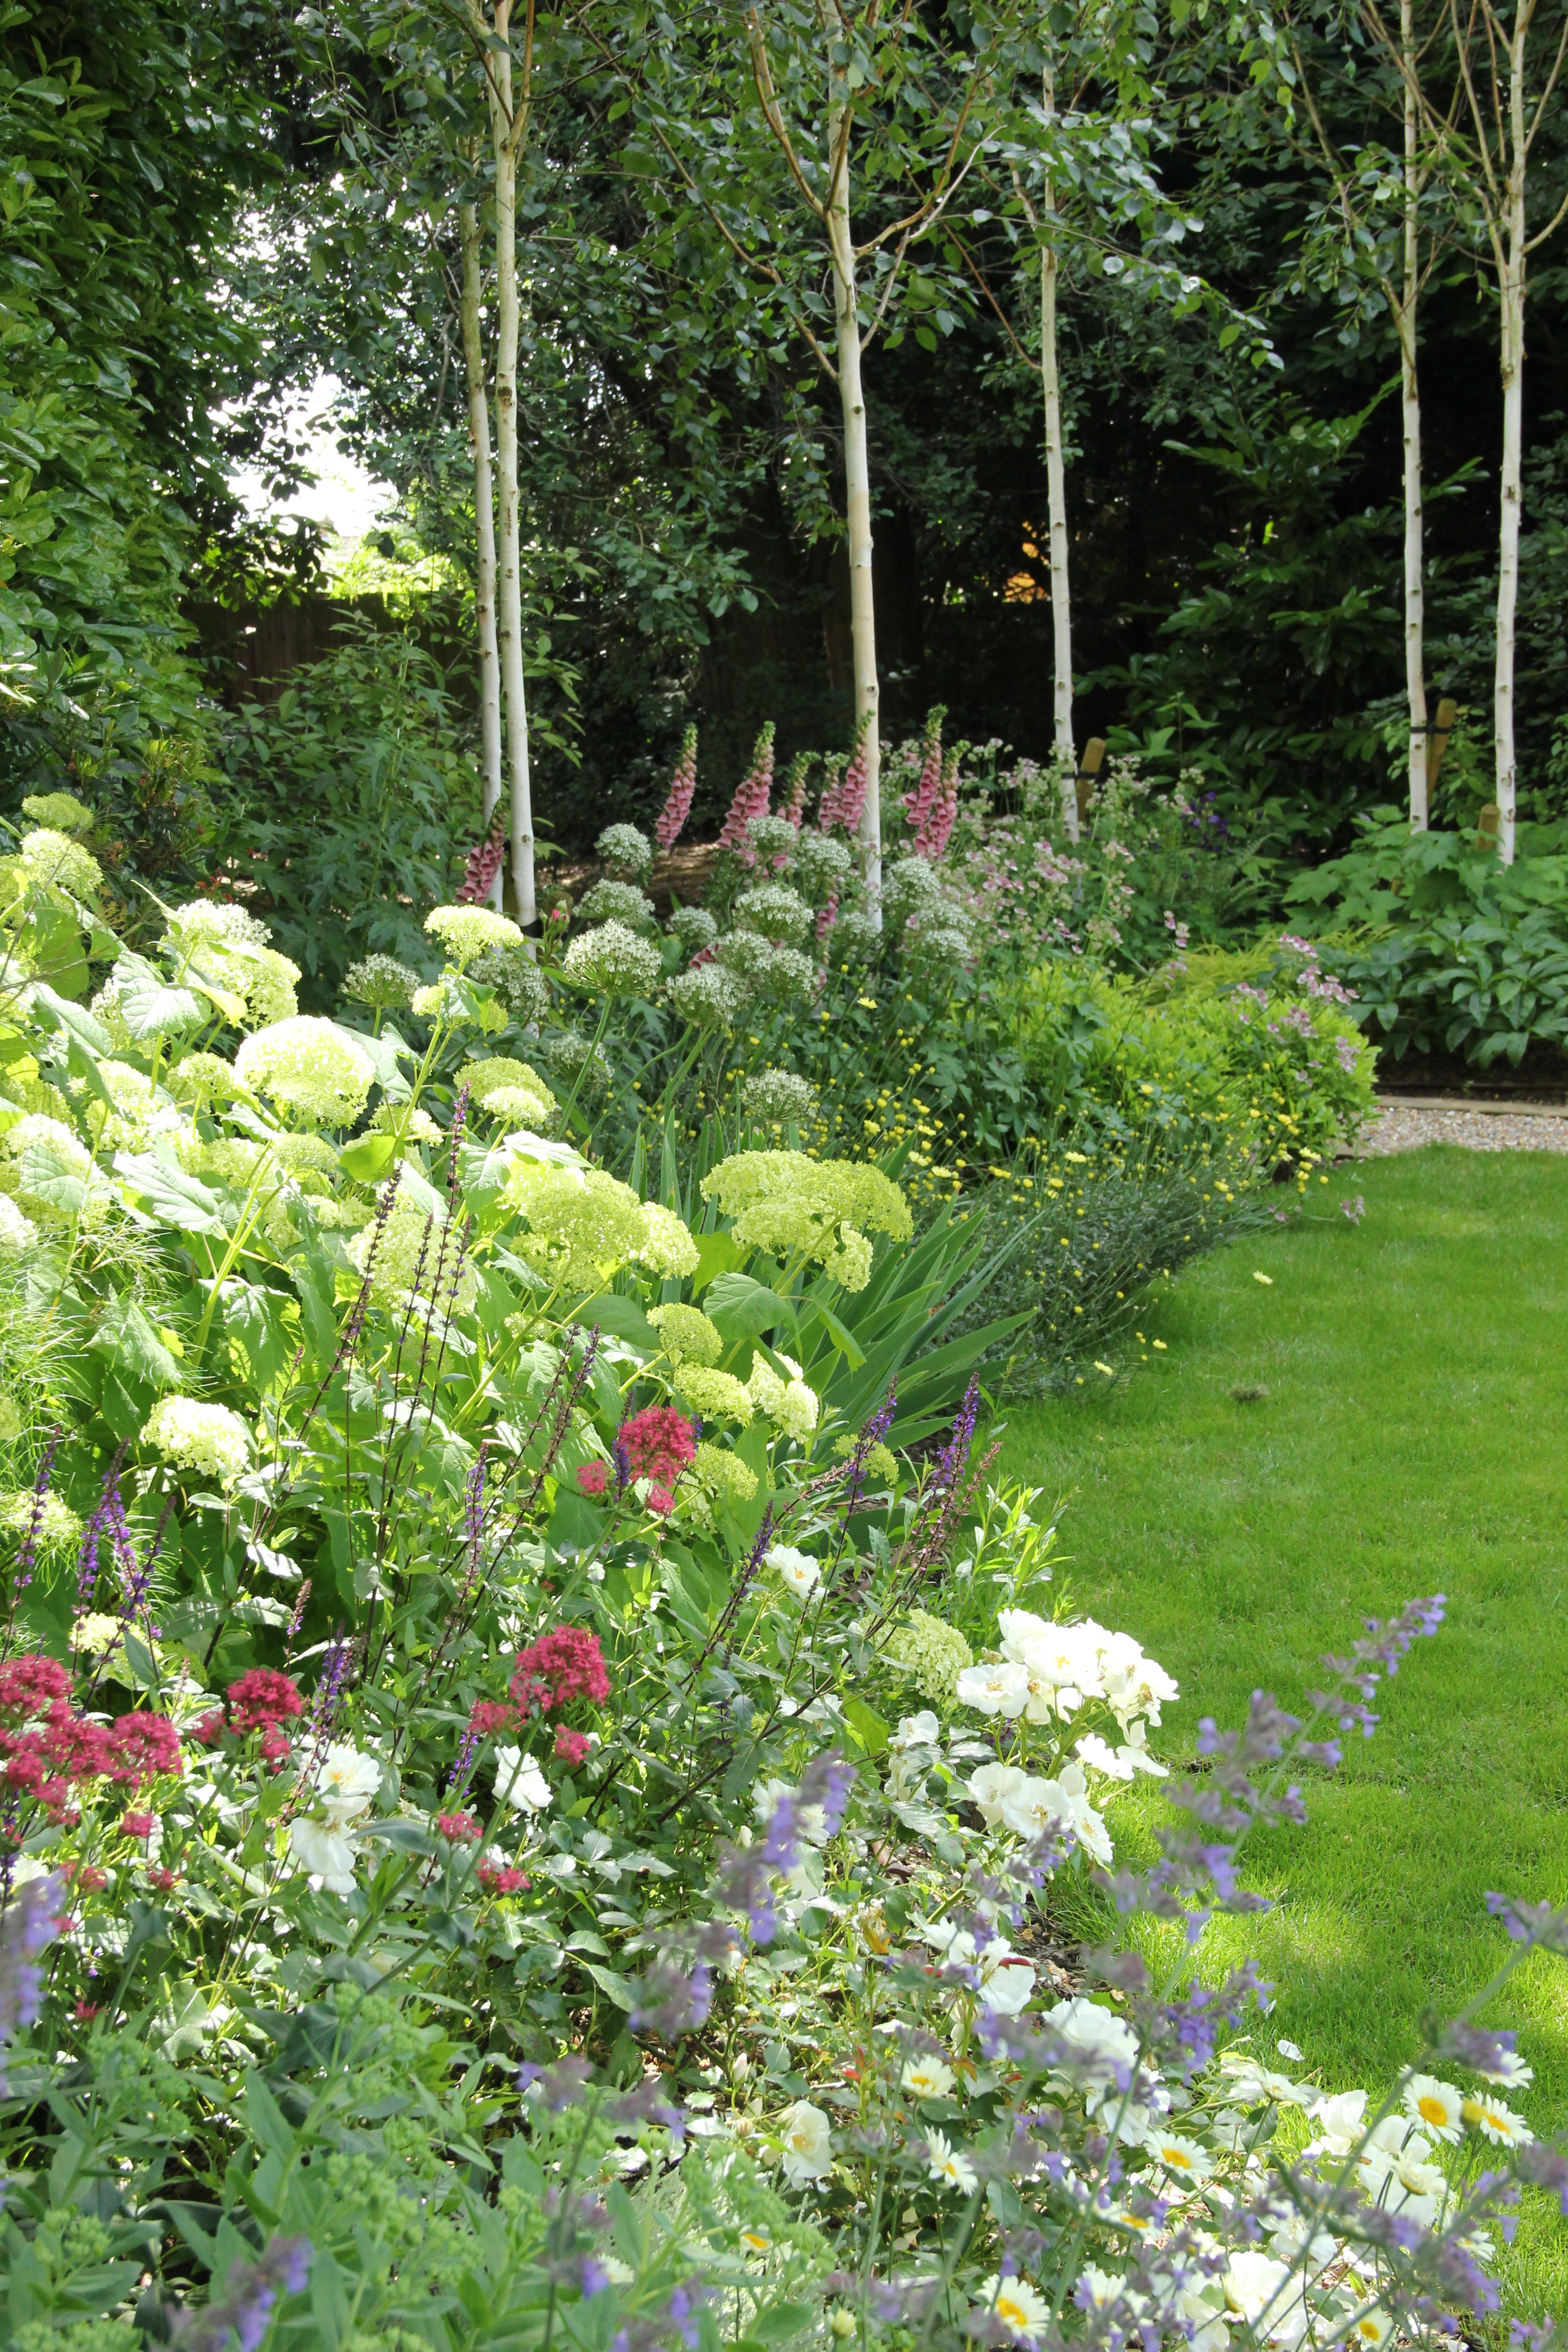 St Albans garden design with traditional country style planting